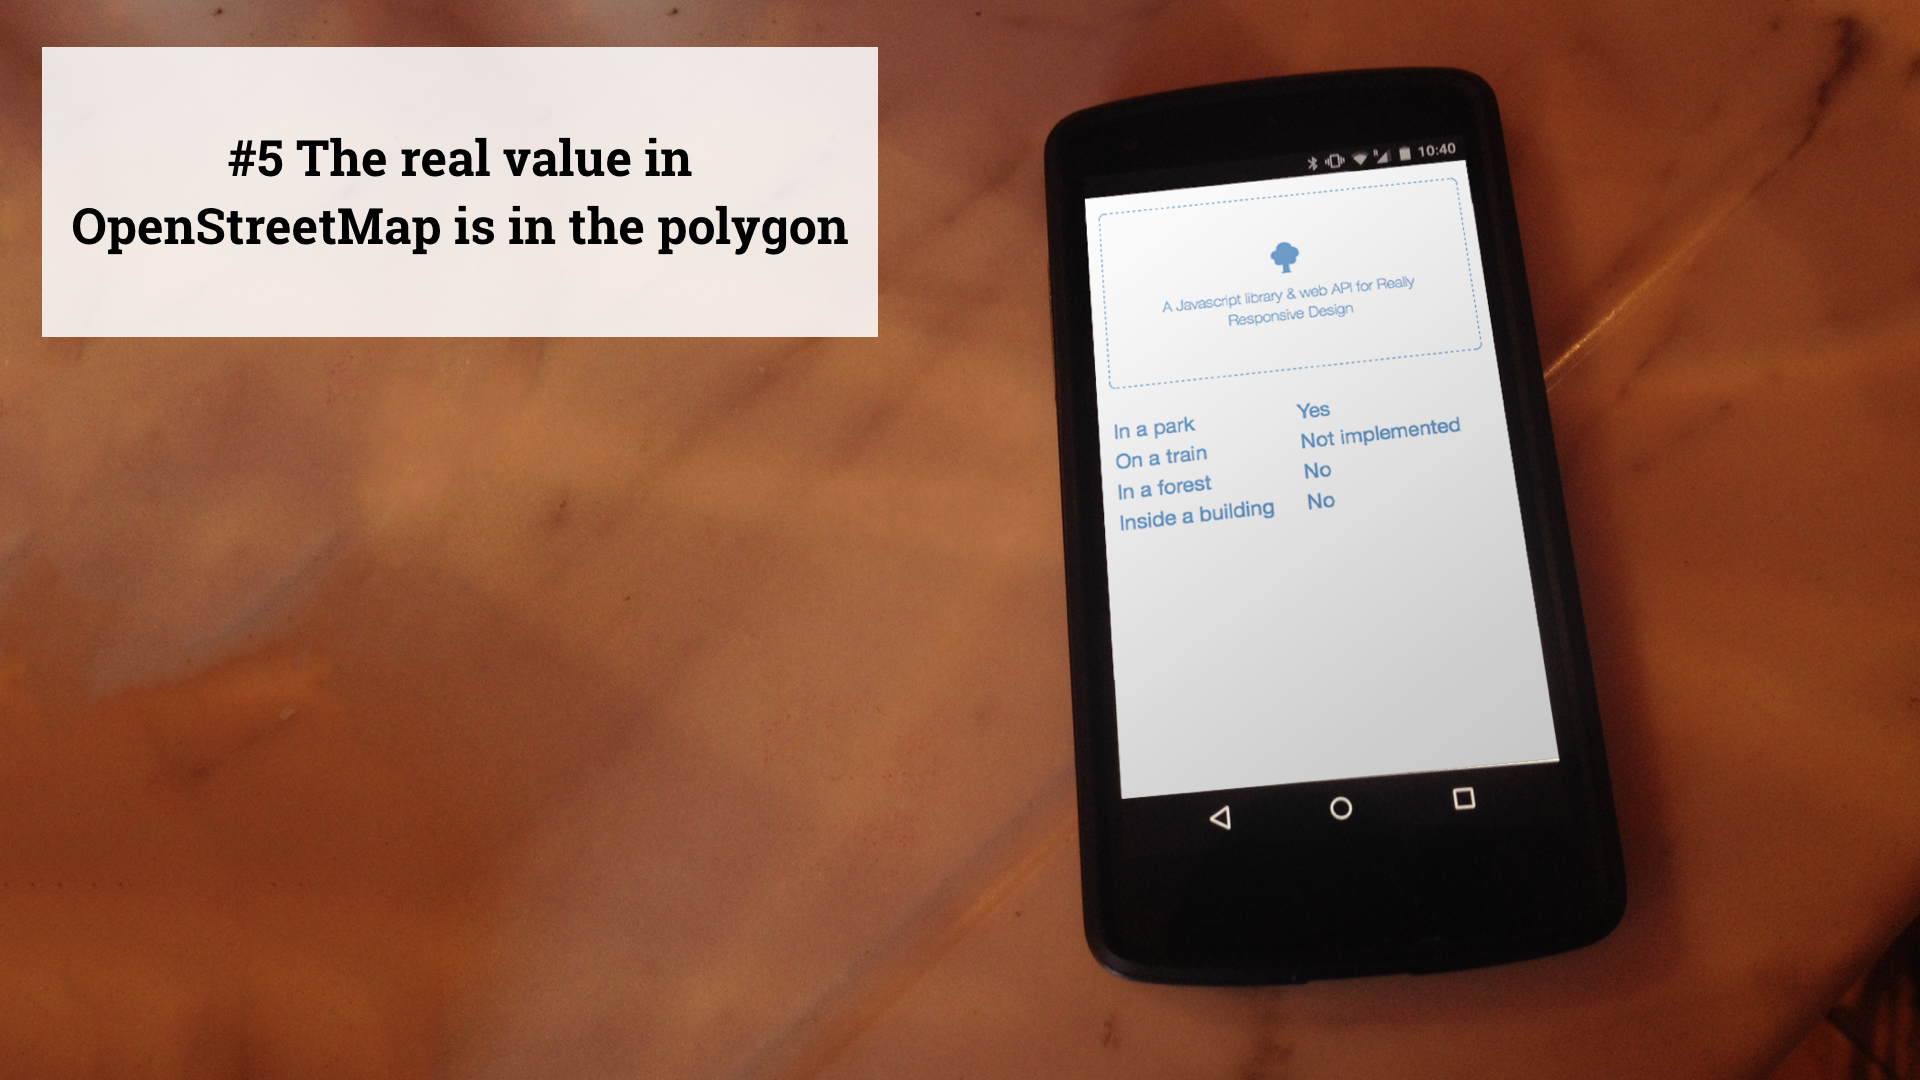 Slide 6 - The real value in OpenStreetMap is in the polygon - photo of a phone showing a test web page